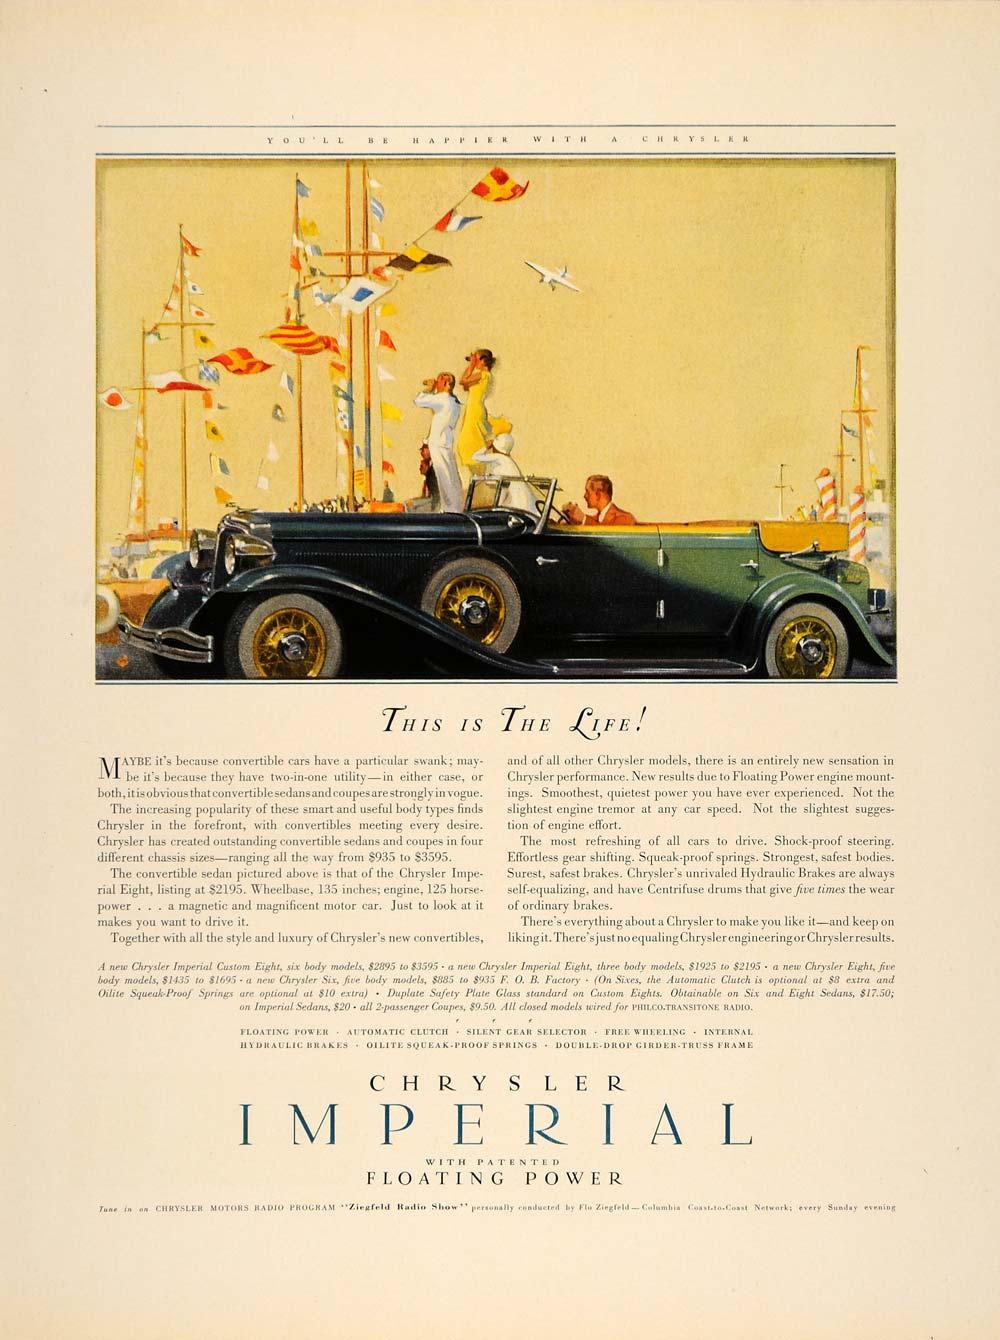 1932 Ad Chrysler Imperial Automobile Convertible Car - ORIGINAL ADVERTISING F5A